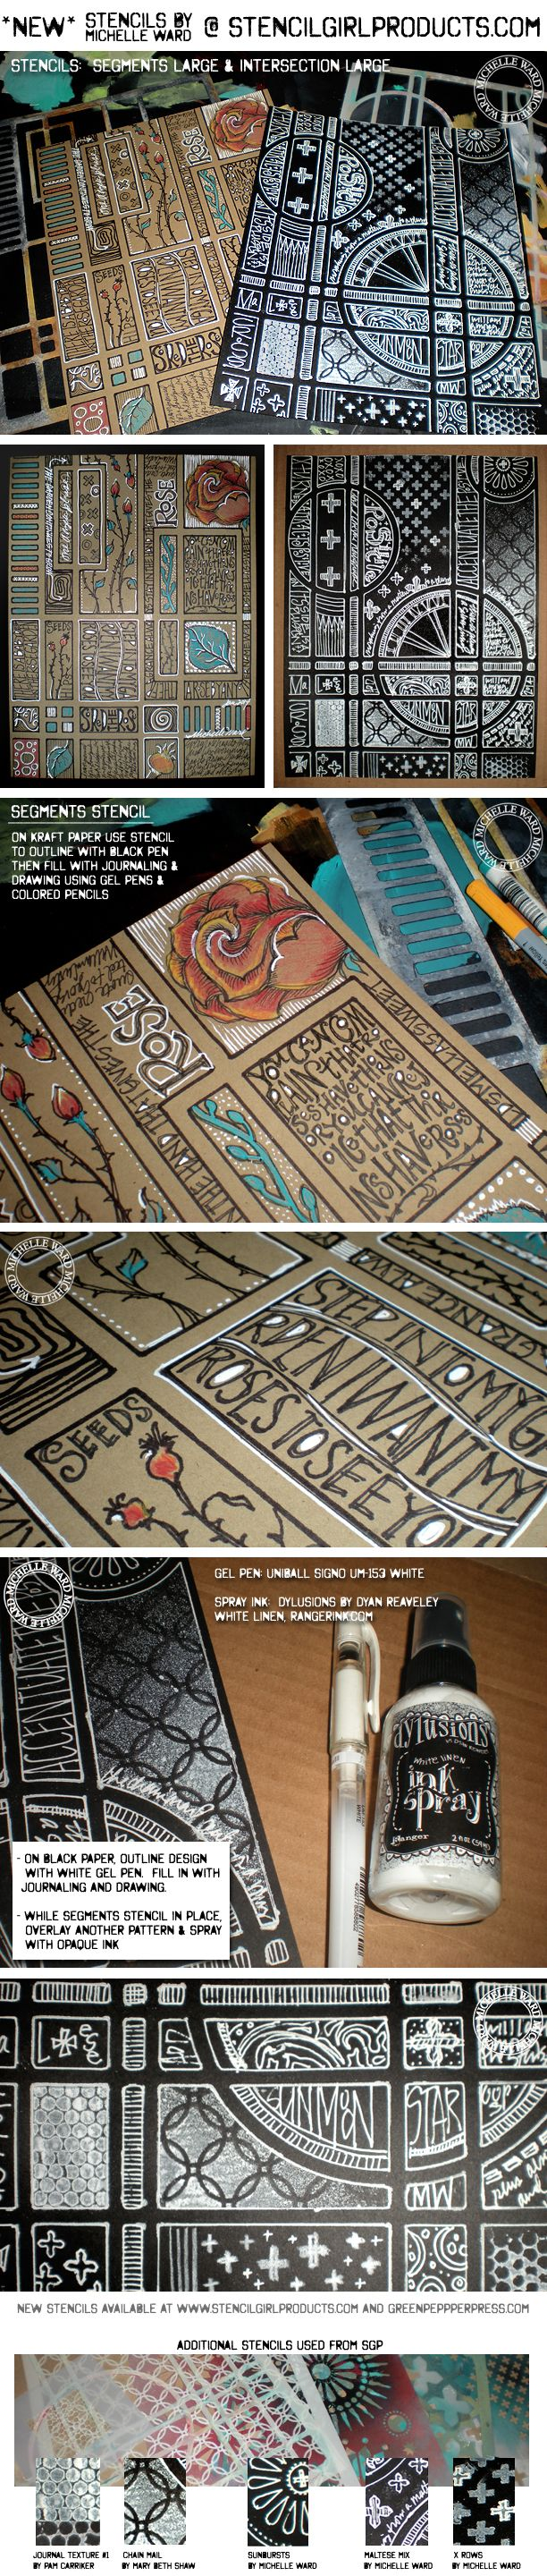 Stencil projects by Michelle Ward with her designs from StencilGirl Products.